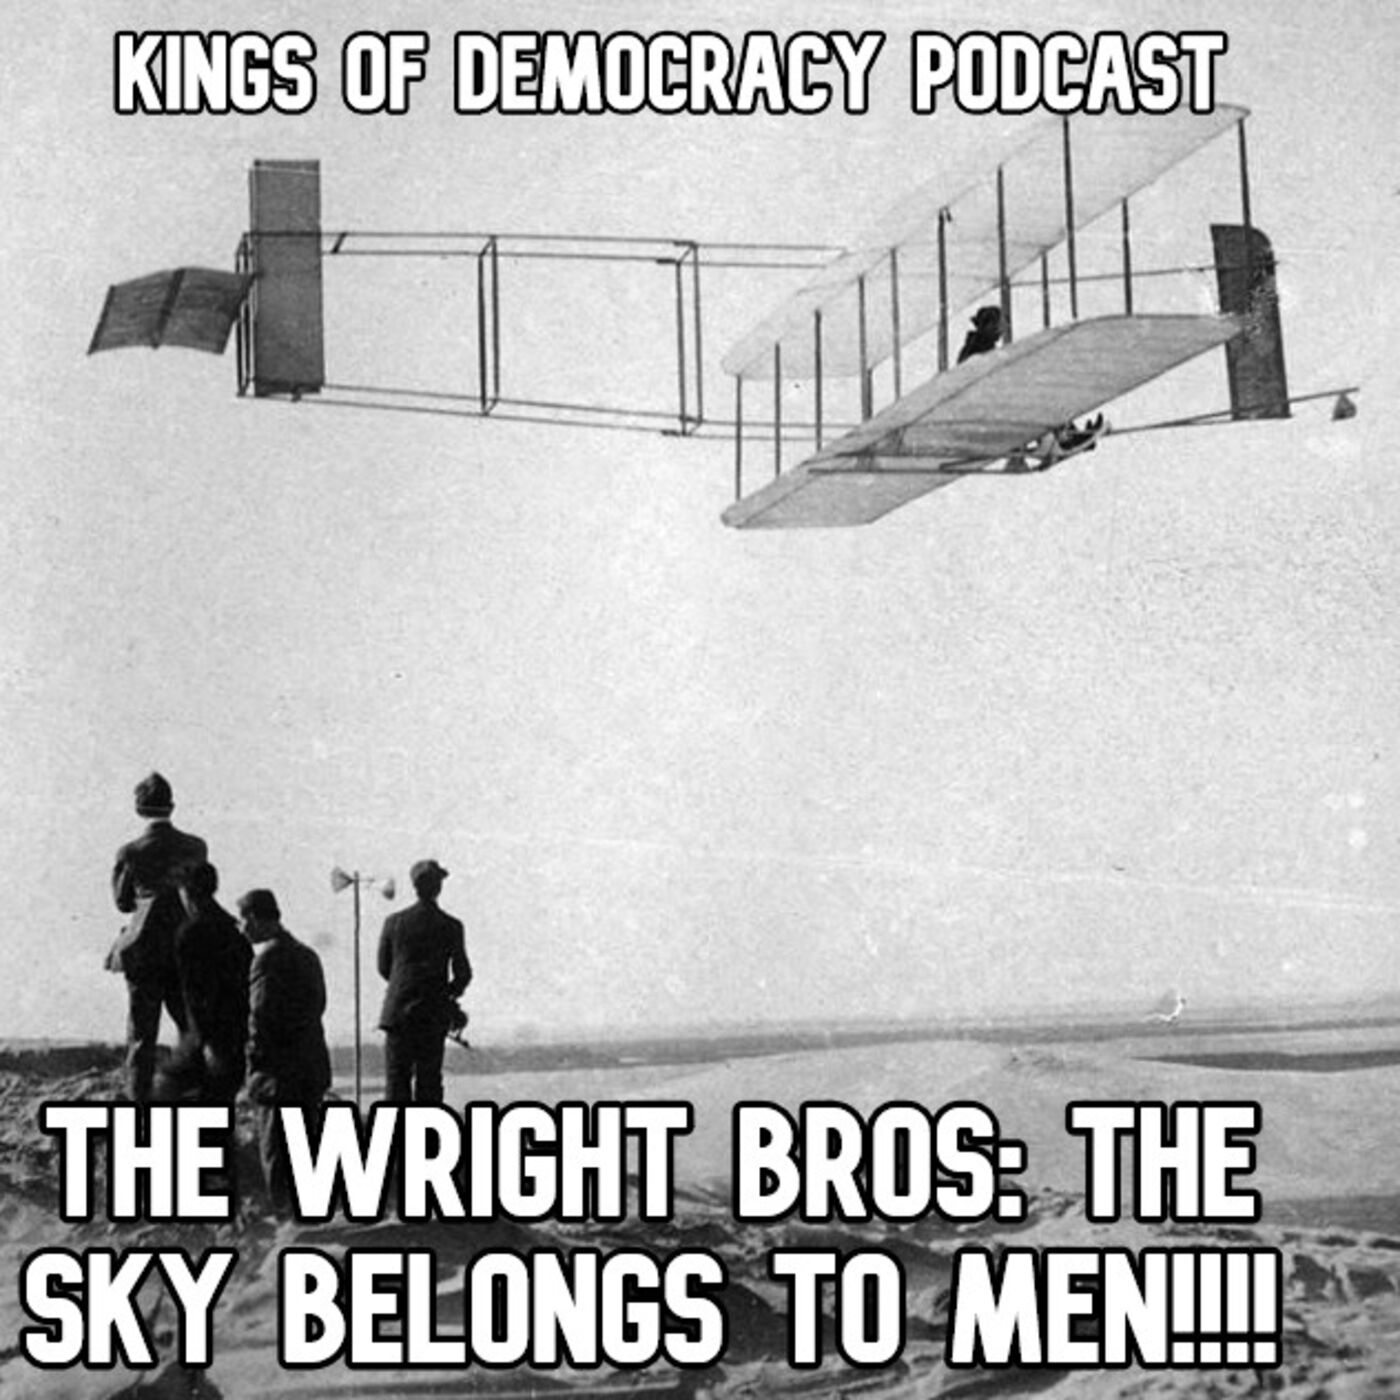 The Wright Brothers: THE SKY BELONGS TO MEN